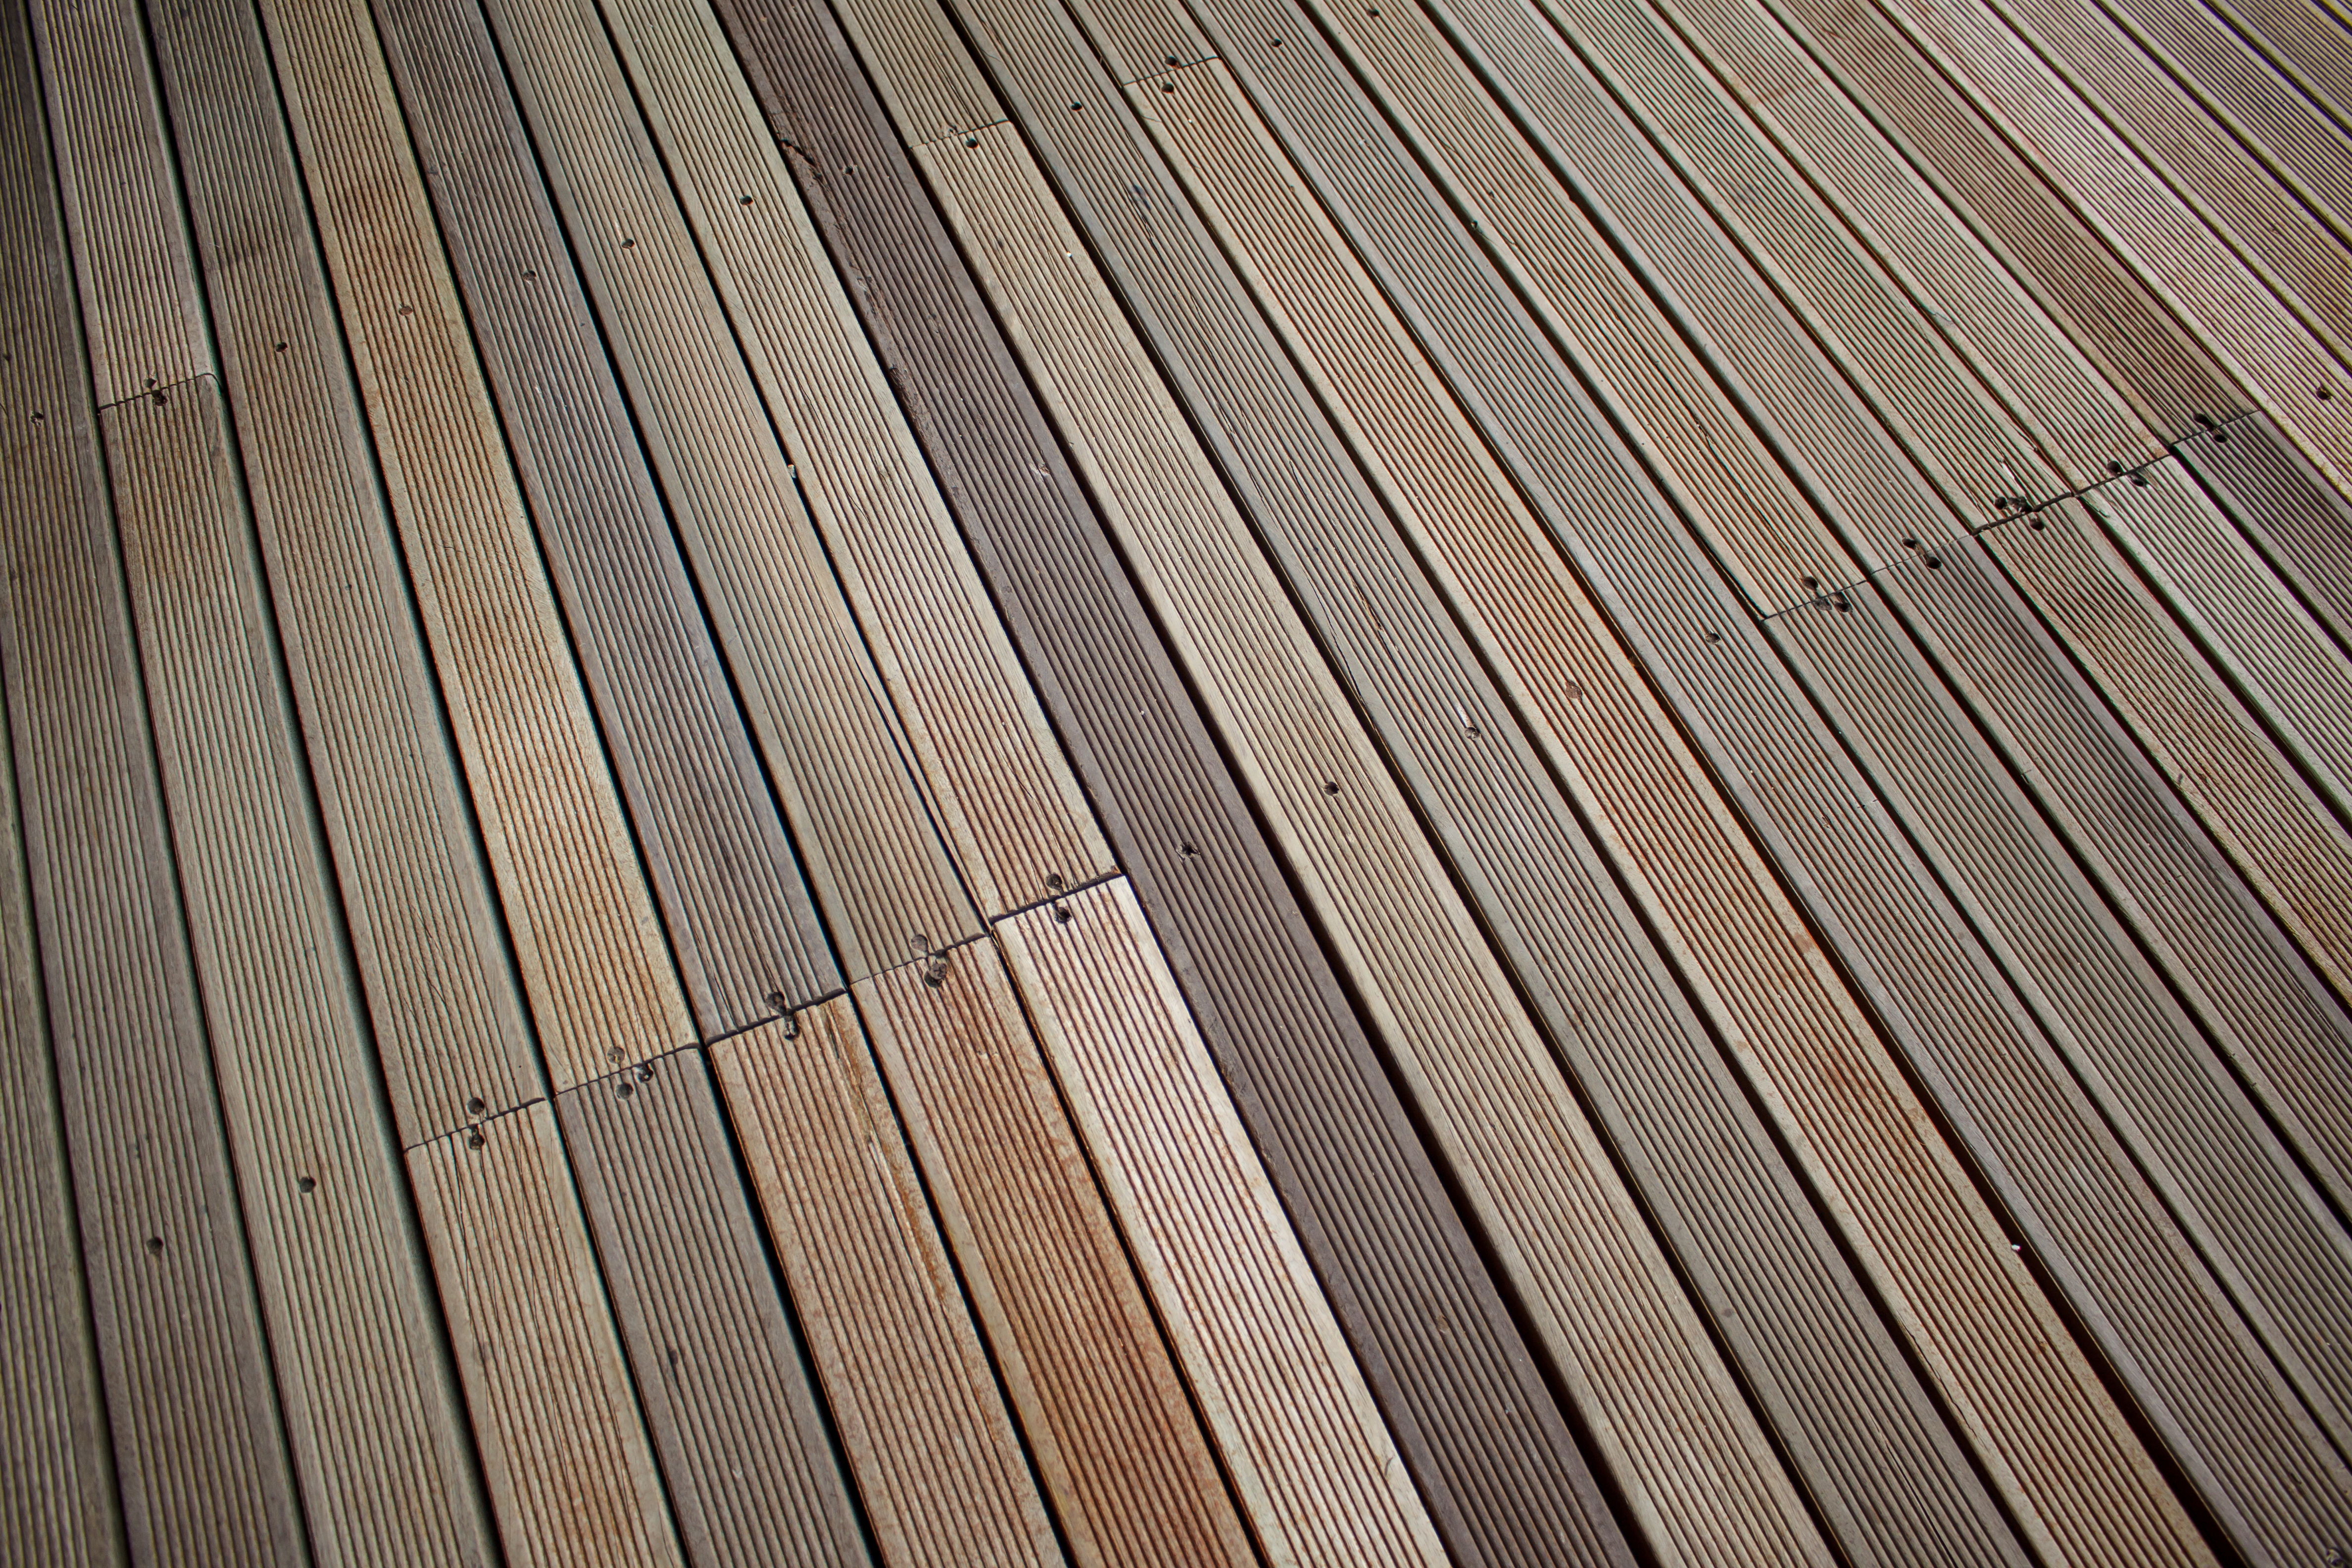 Deck replacement, wood deck